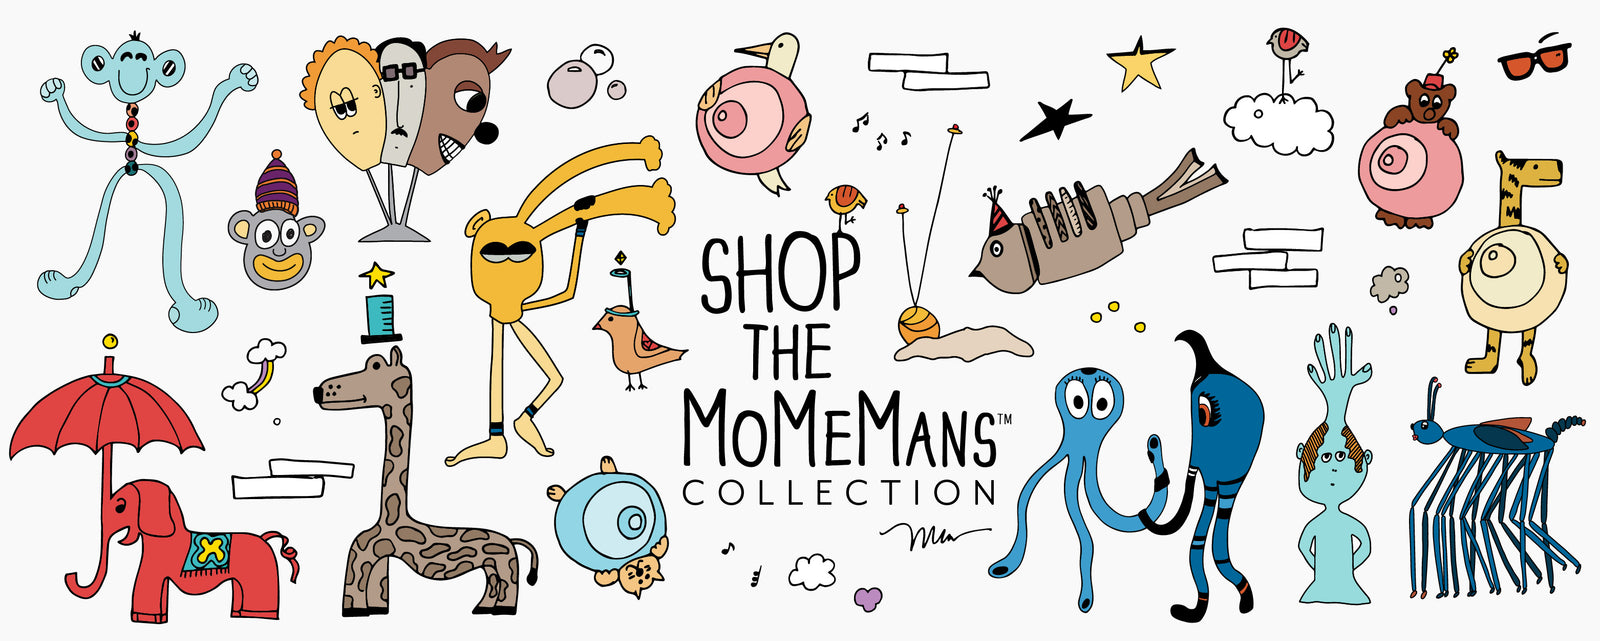 The MoMeMans Collection